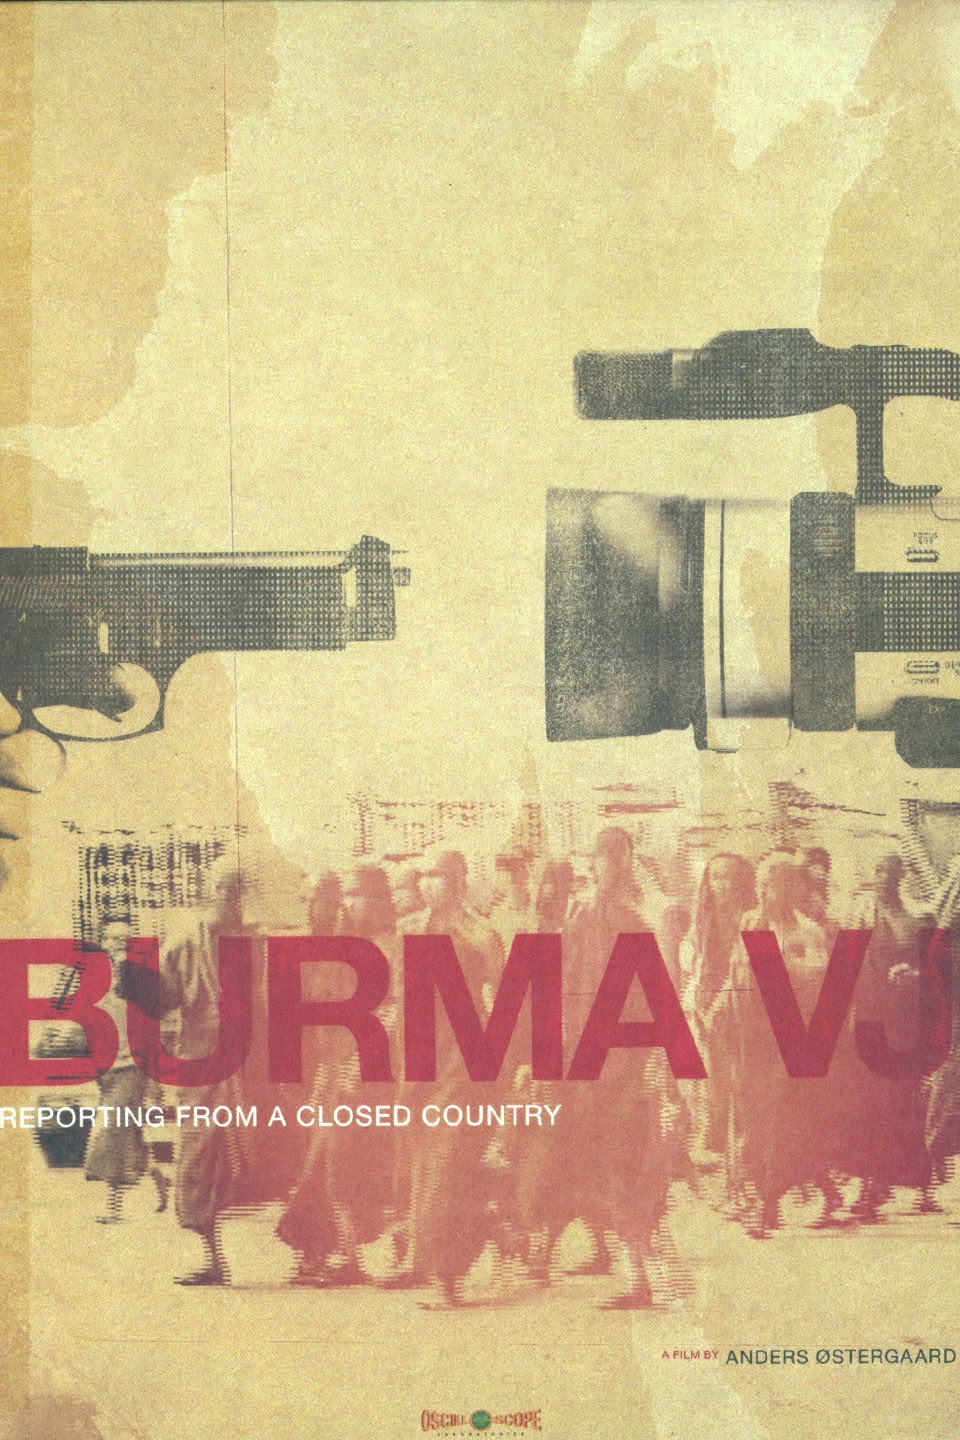 Burma vj   reporting from a closed country